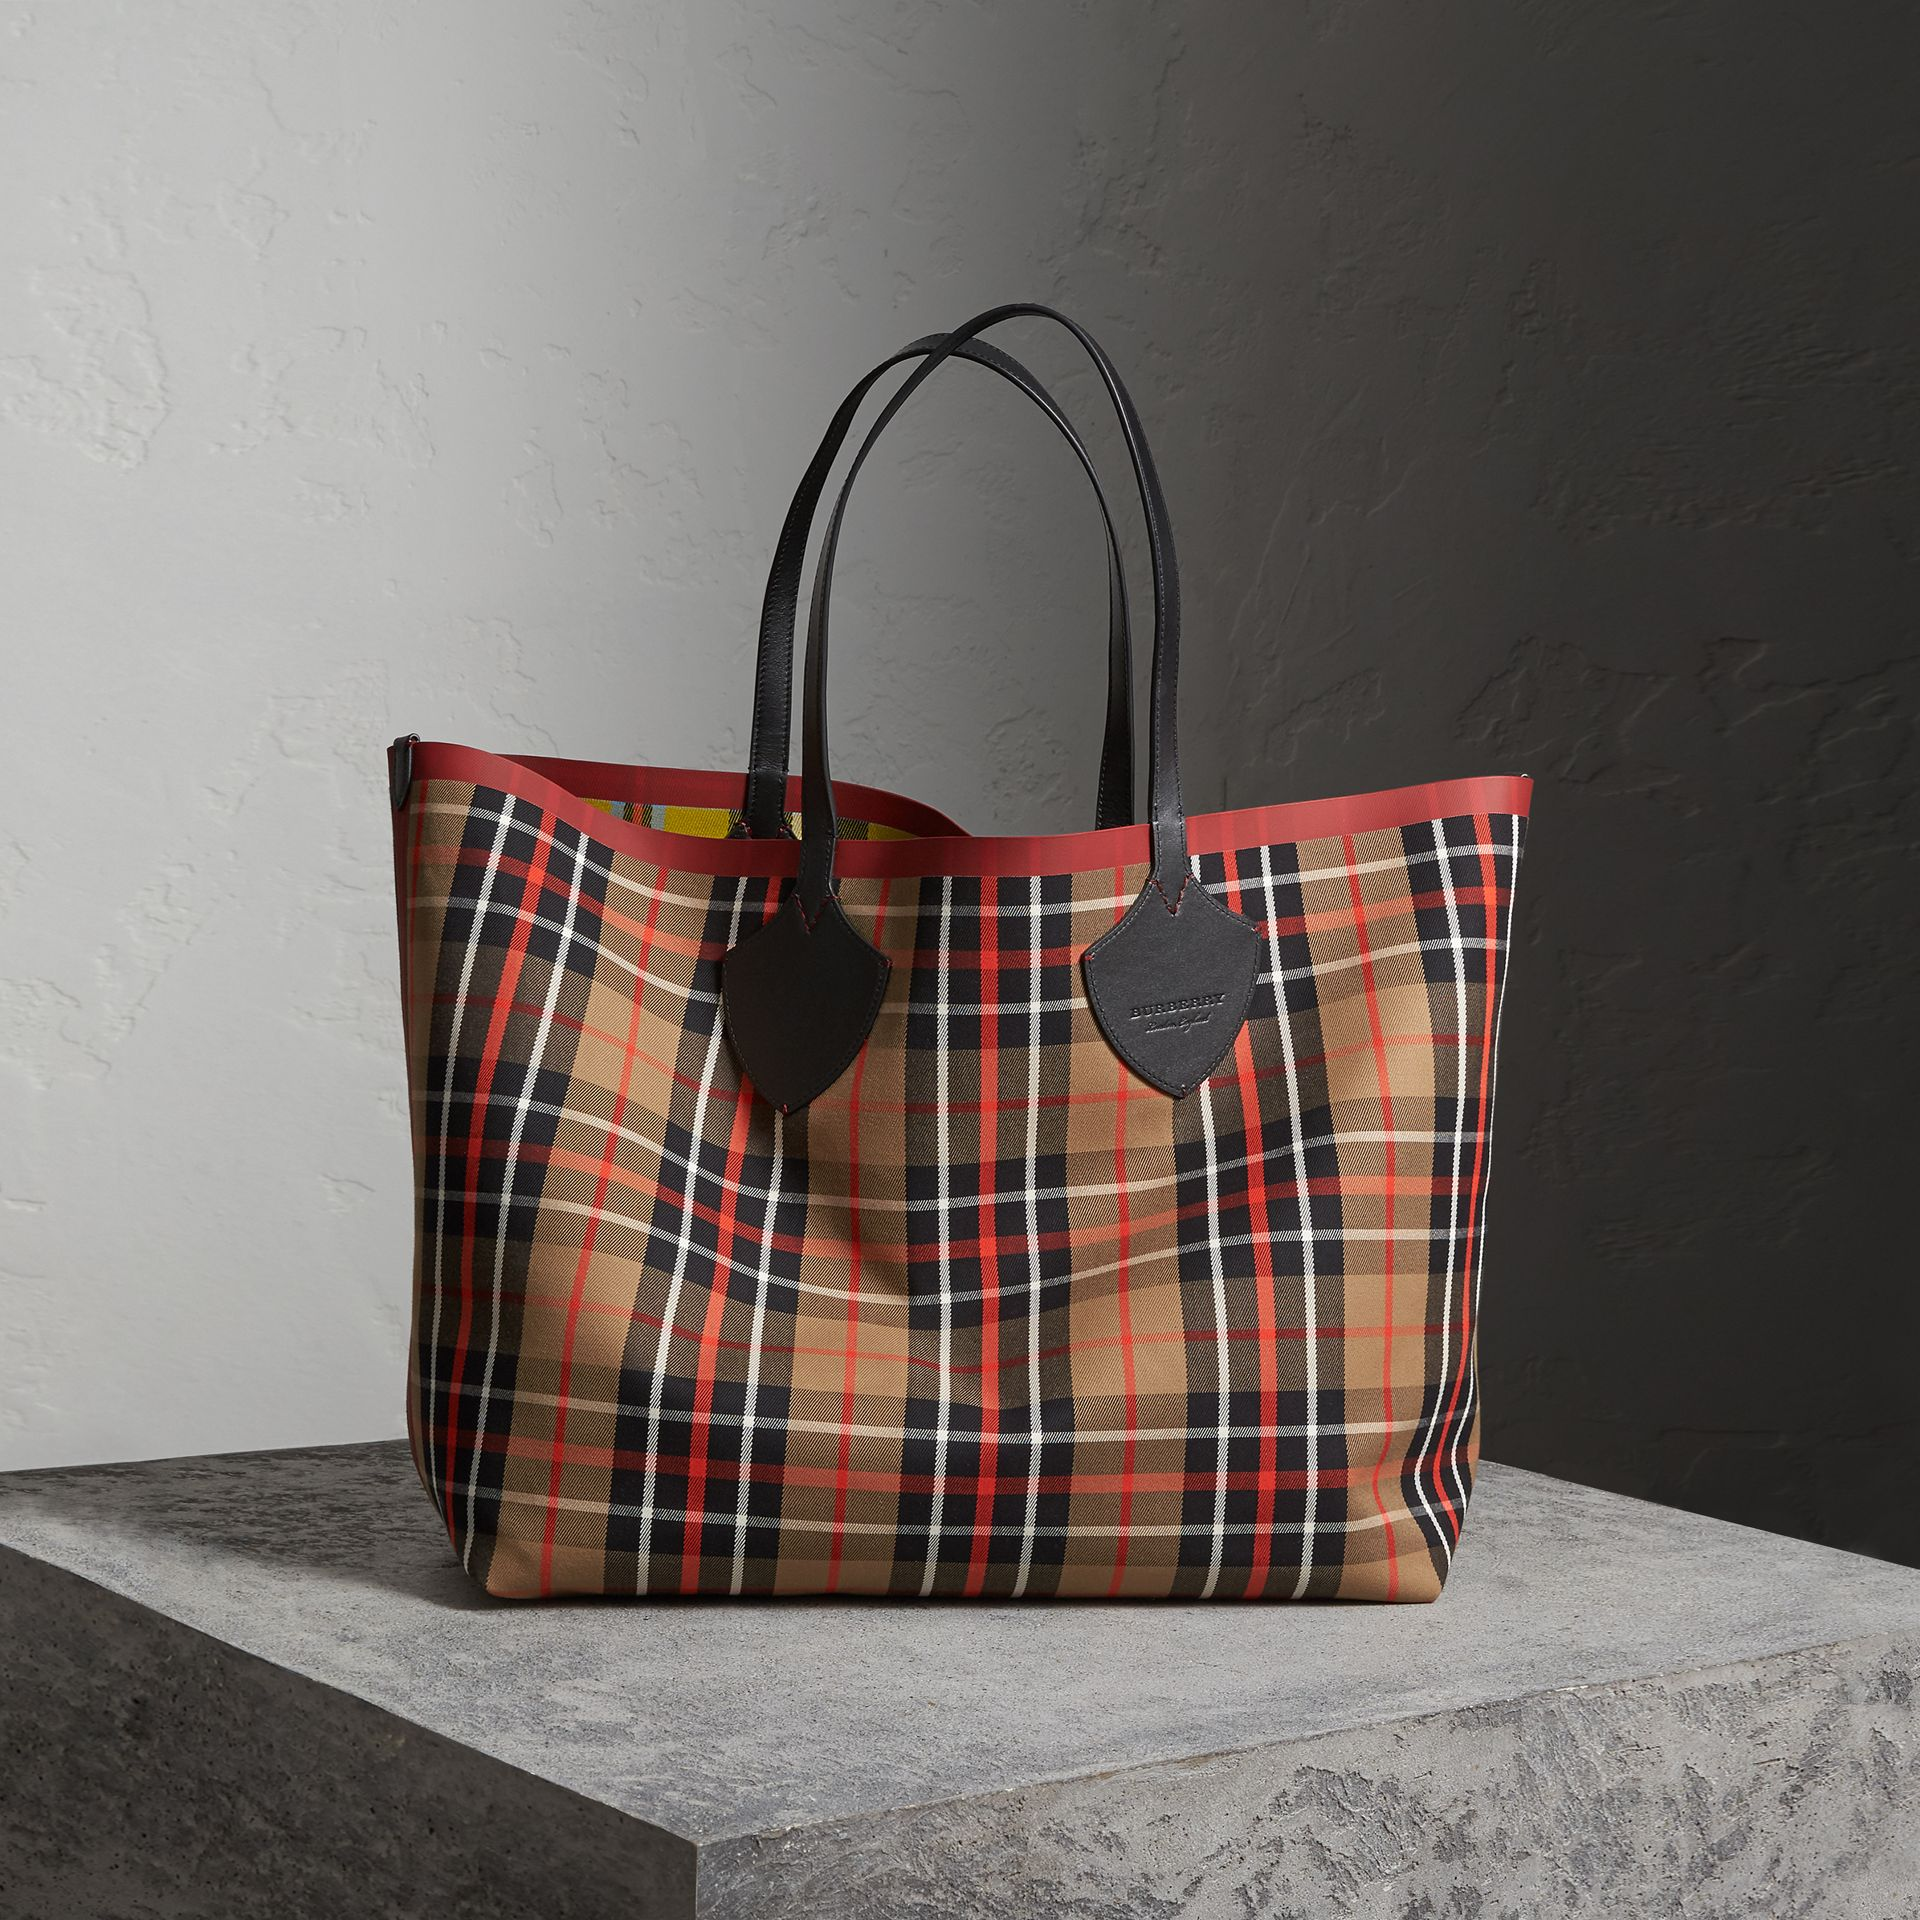 Sac tote The Giant réversible en coton tartan (Caramel/jaune Lin) | Burberry - photo de la galerie 0